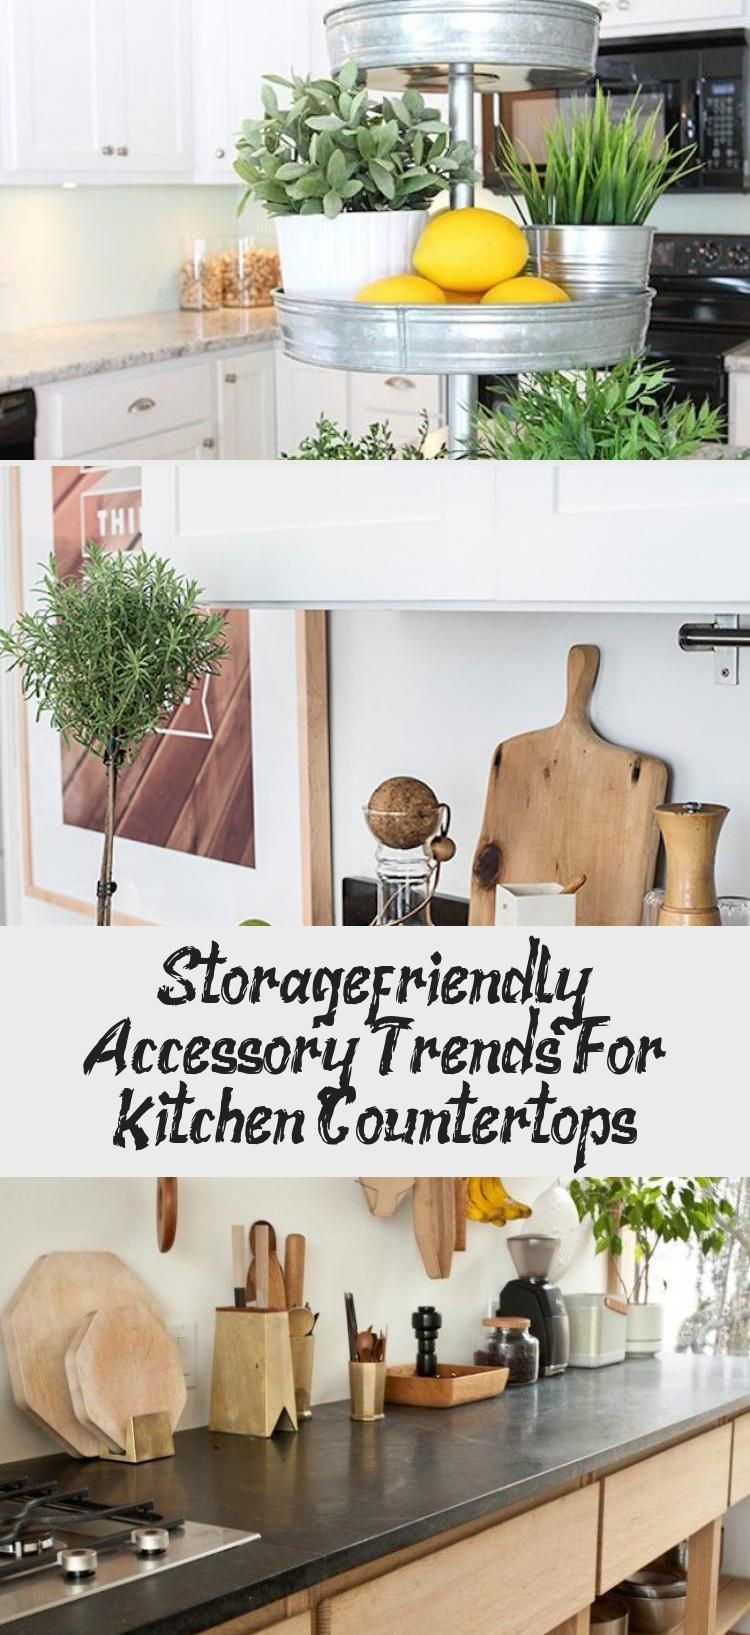 Storage Friendly Accessory Trends For Kitchen Countertops In 2020